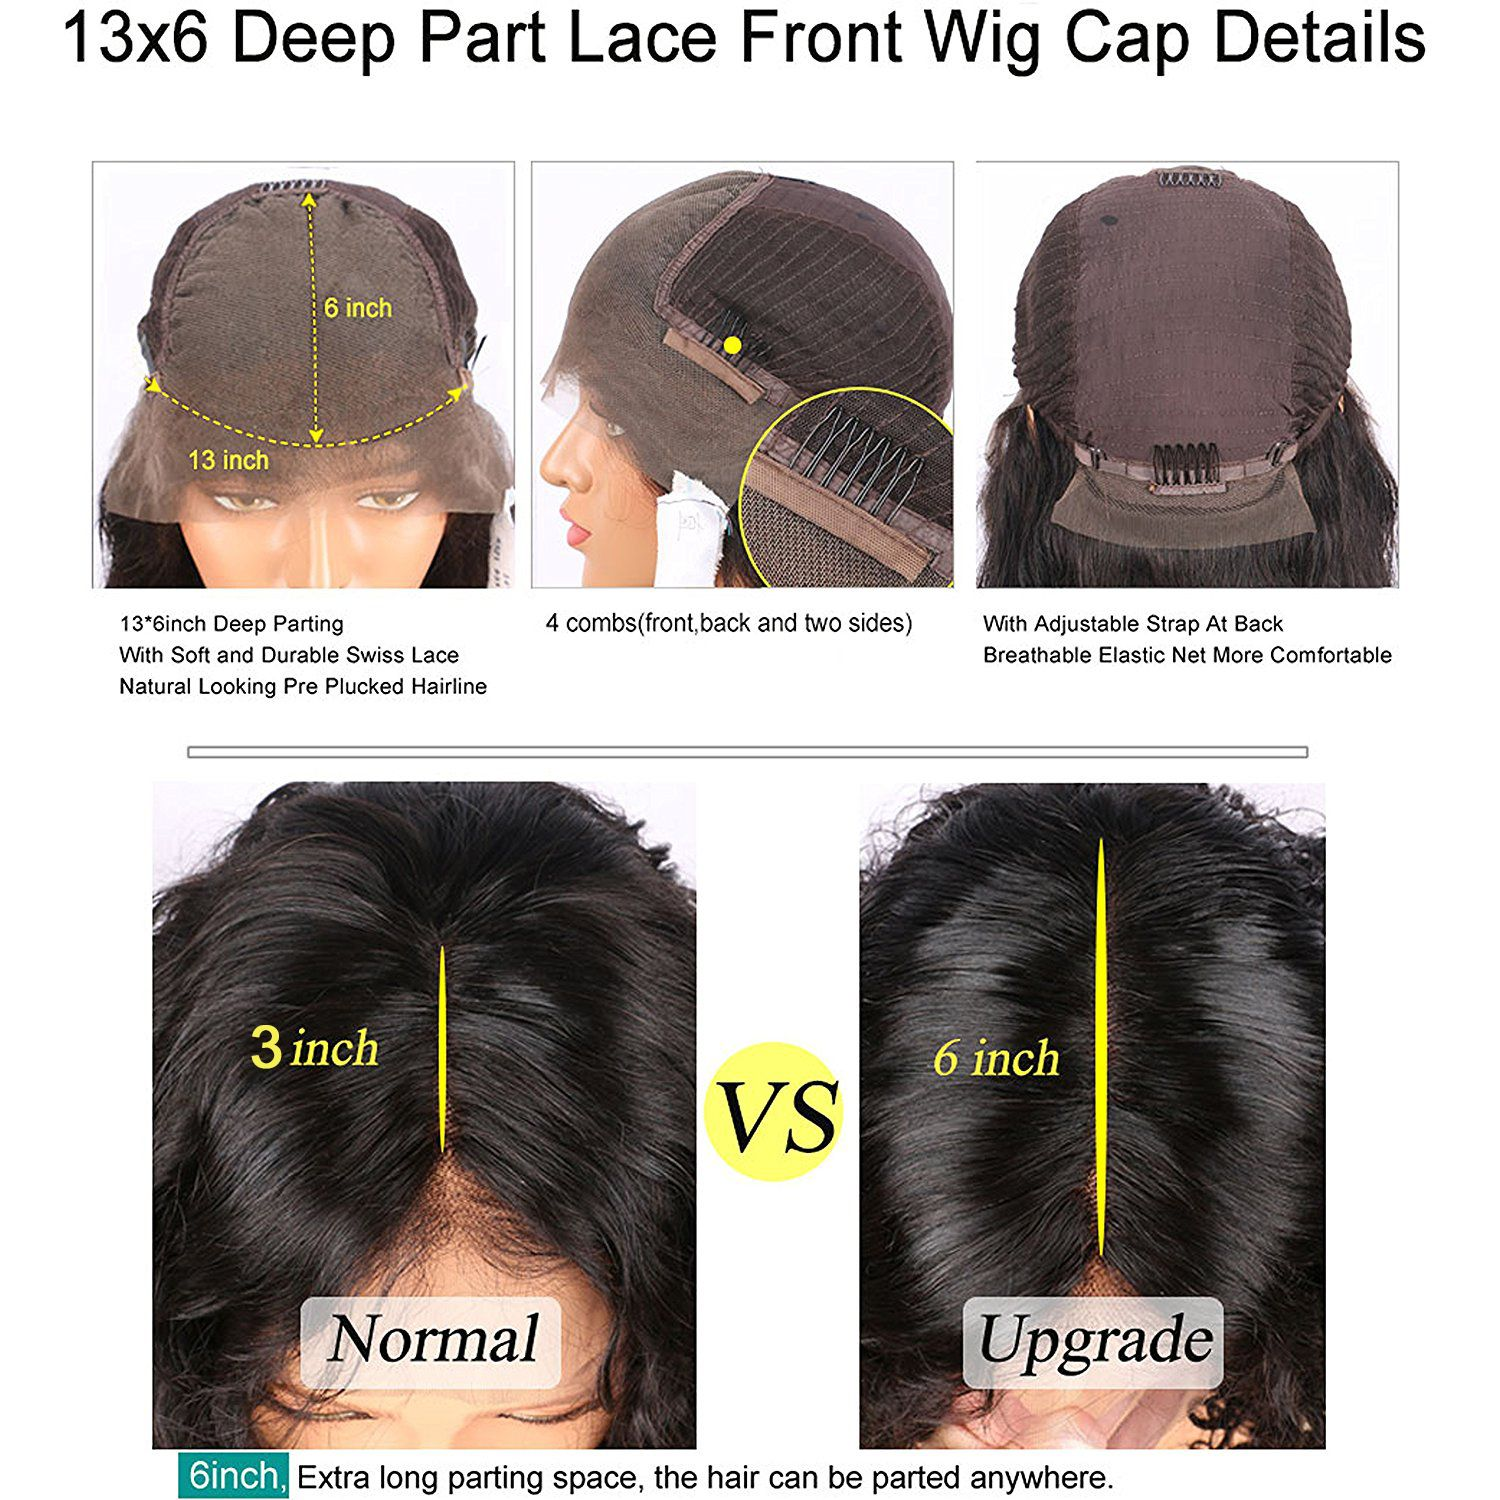 Pre plucked xinch deep part density deep curly lace front